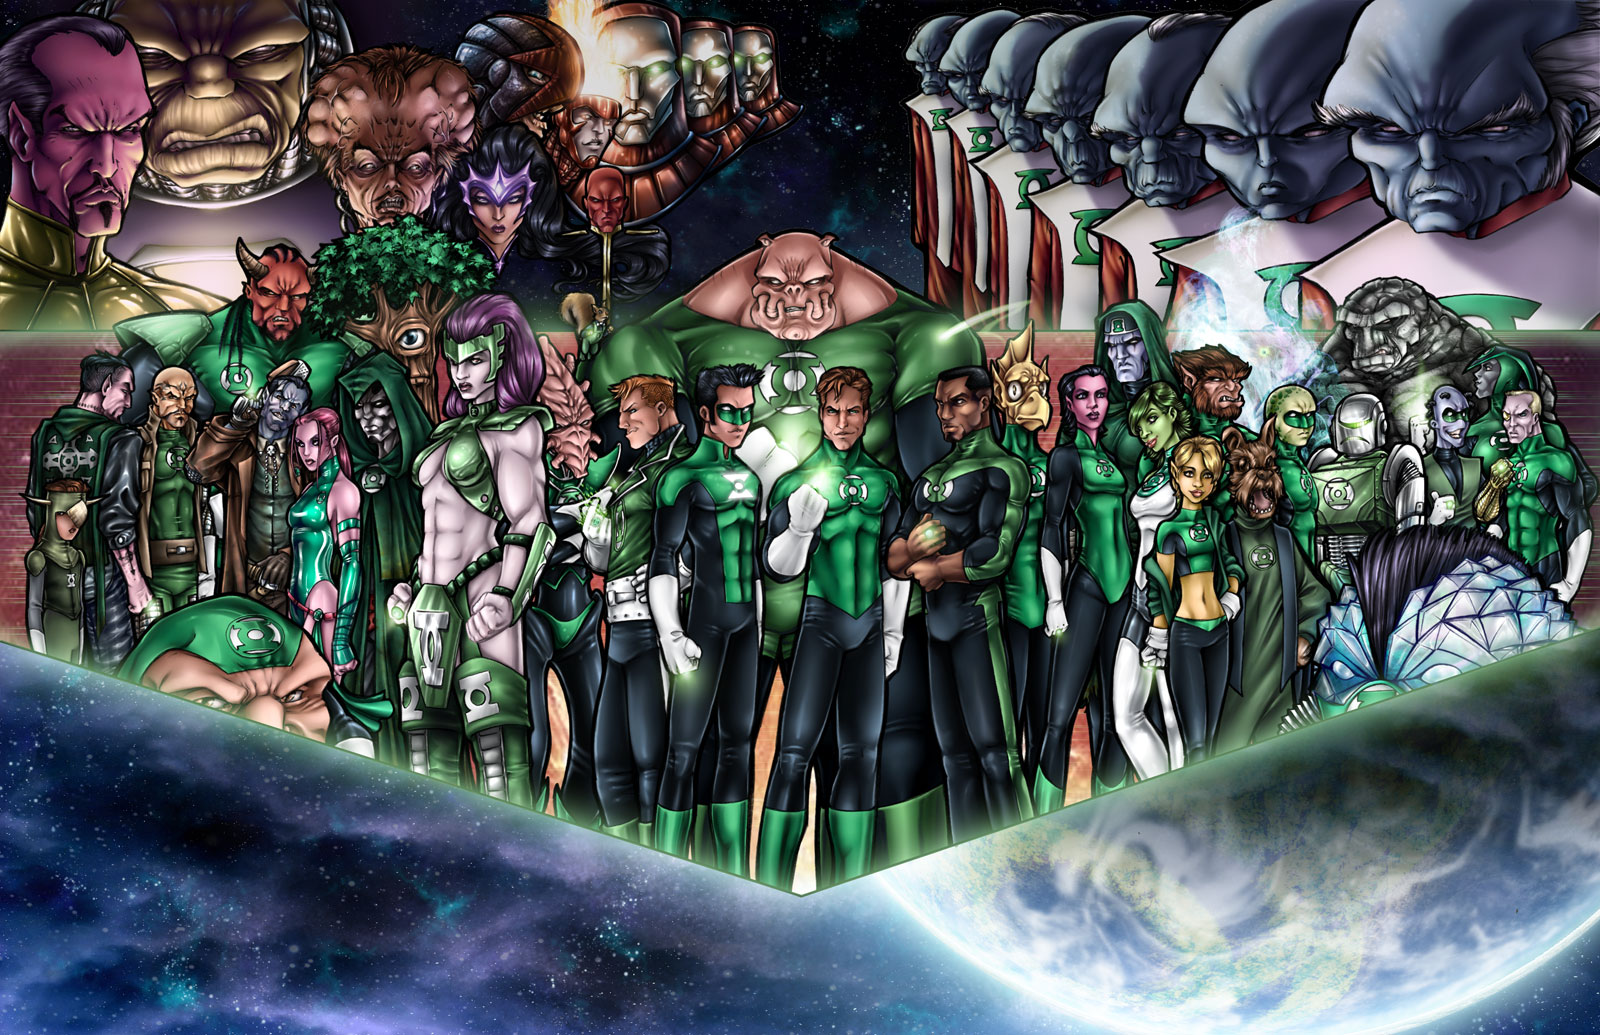 Les images du net - Page 3 Green_Lantern_Corps_by_AdamWithers